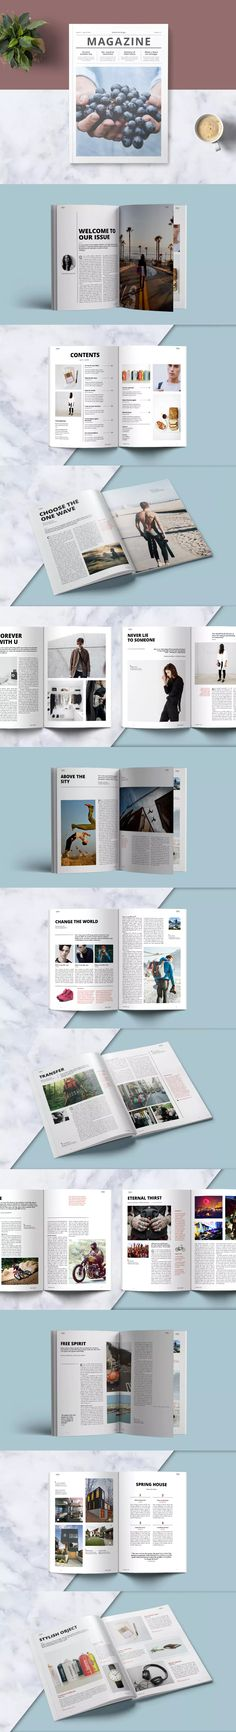 Multipurpose Magazine A4 Template InDesign INDD - 32 Unique Pages